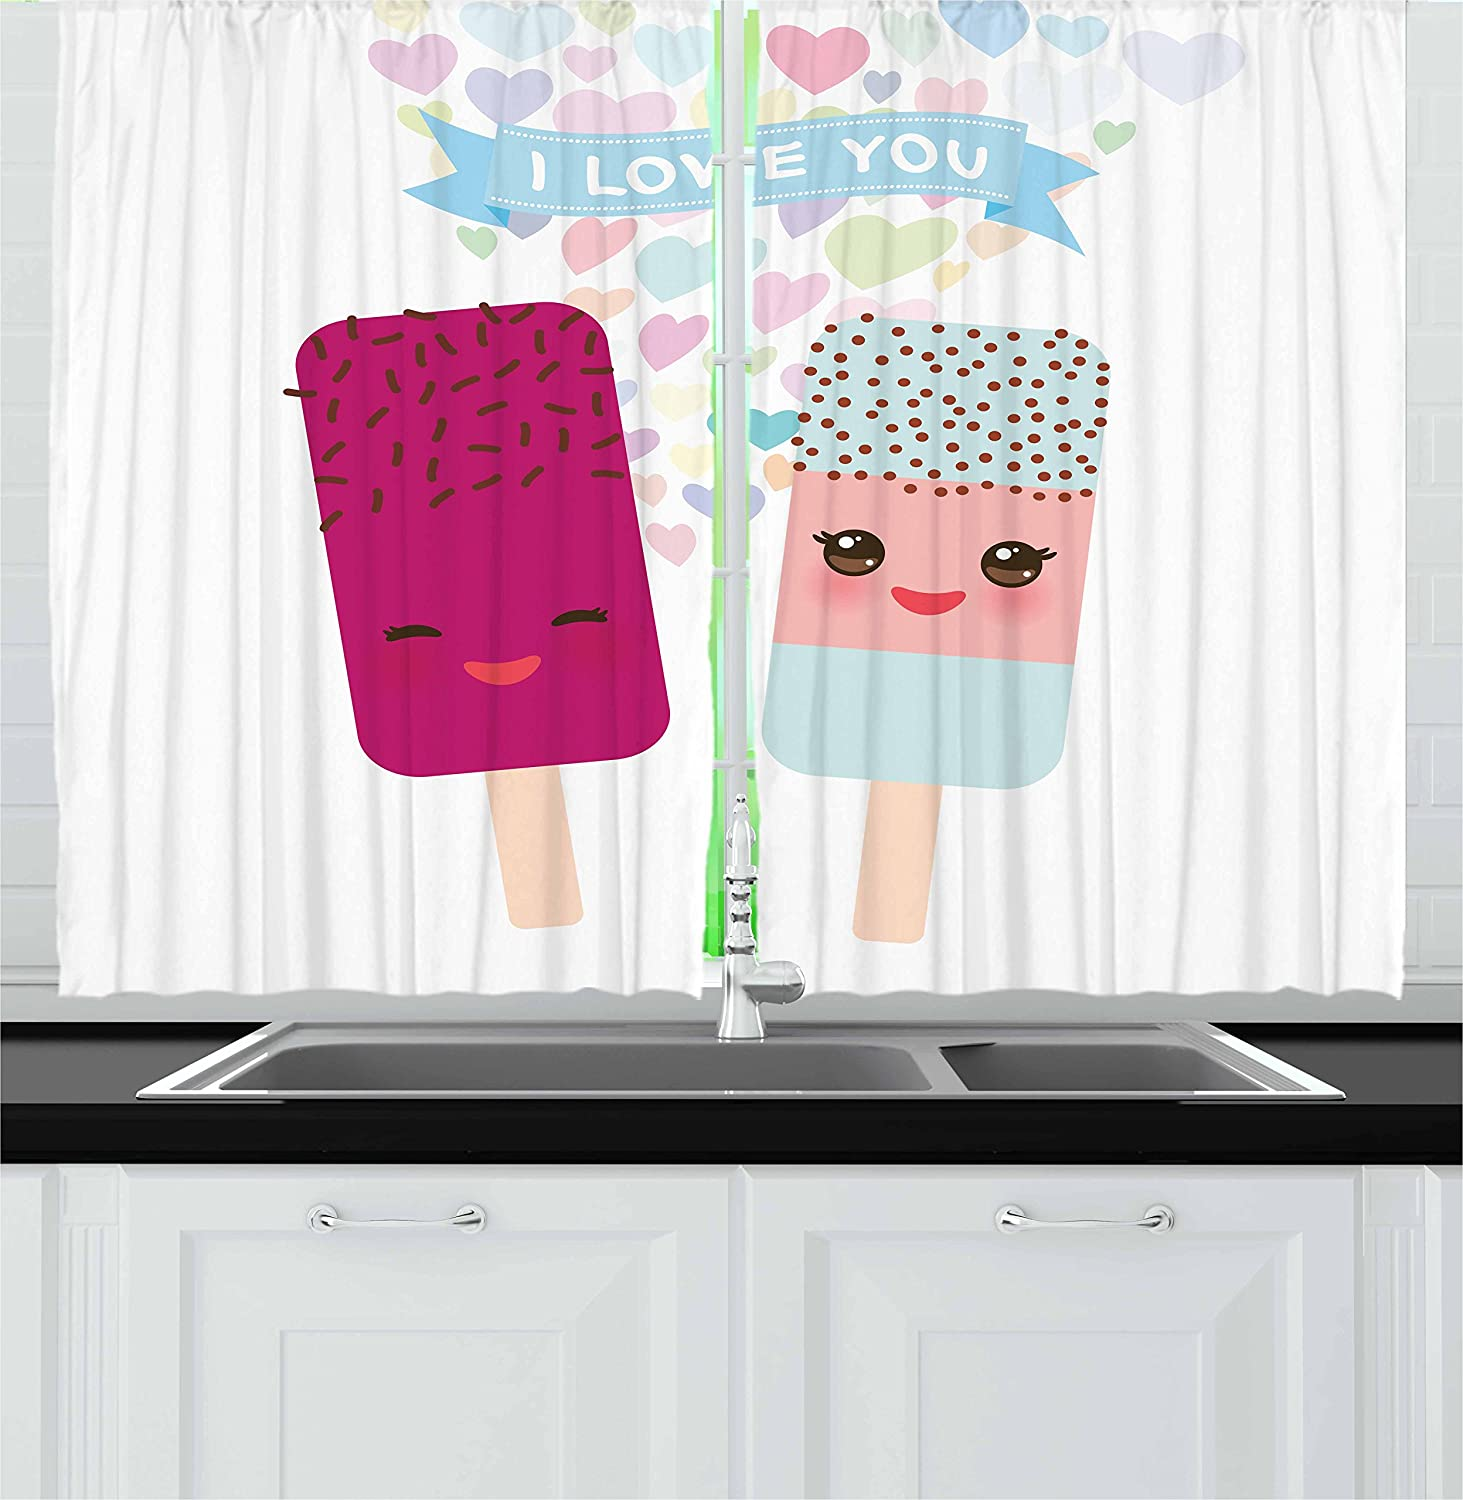 Lunarable Kawaii Kitchen Curtains Abstract I Love You Banner With Colorful Hearts And 2 Smiling Popsicle Ice Creams Window Drapes 2 Panel Set For Kitchen Cafe Decor 55 X 39 Multicolor